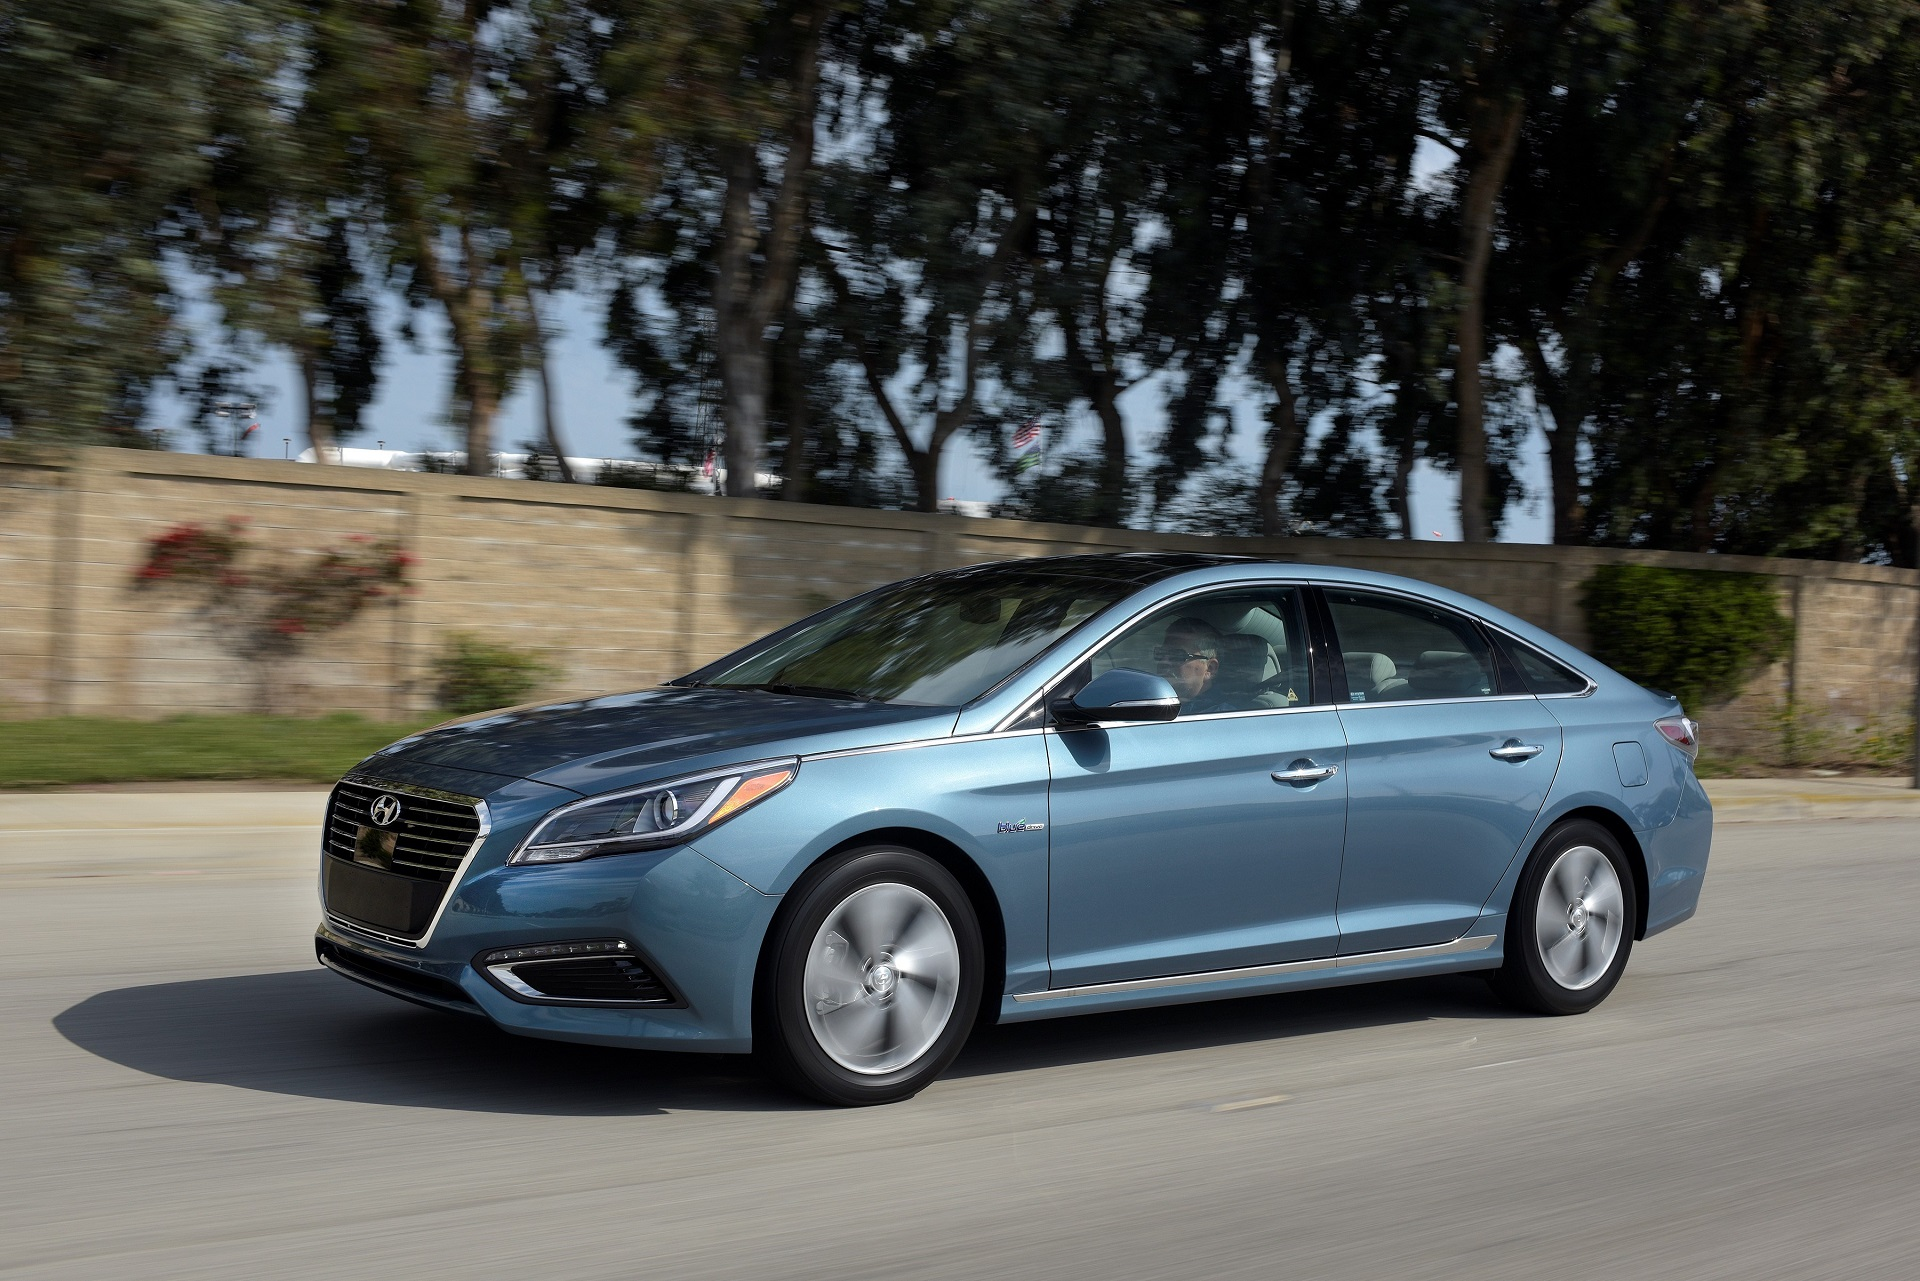 2017 hyundai sonata hybrid review ratings specs prices and photos the car connection. Black Bedroom Furniture Sets. Home Design Ideas